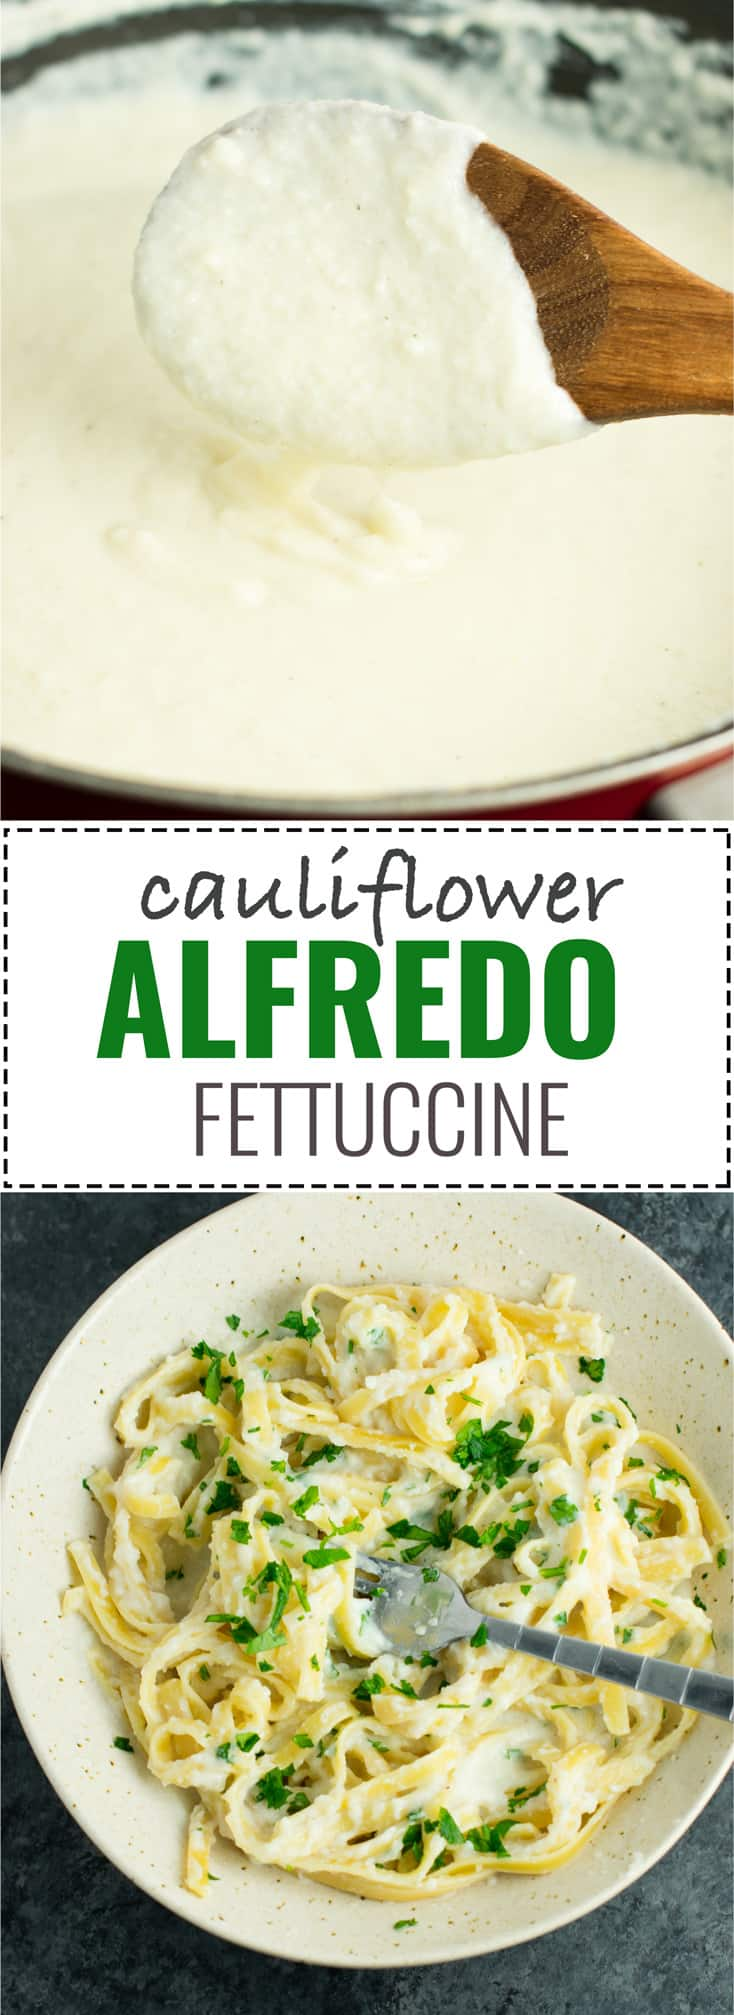 Easy Cauliflower Fettuccine Alfredo Recipe with fresh garlic and parmesan. A sauce so insanely delicious you'll want to lick it from the spoon! #cauliflower #alfredo #fettuccine